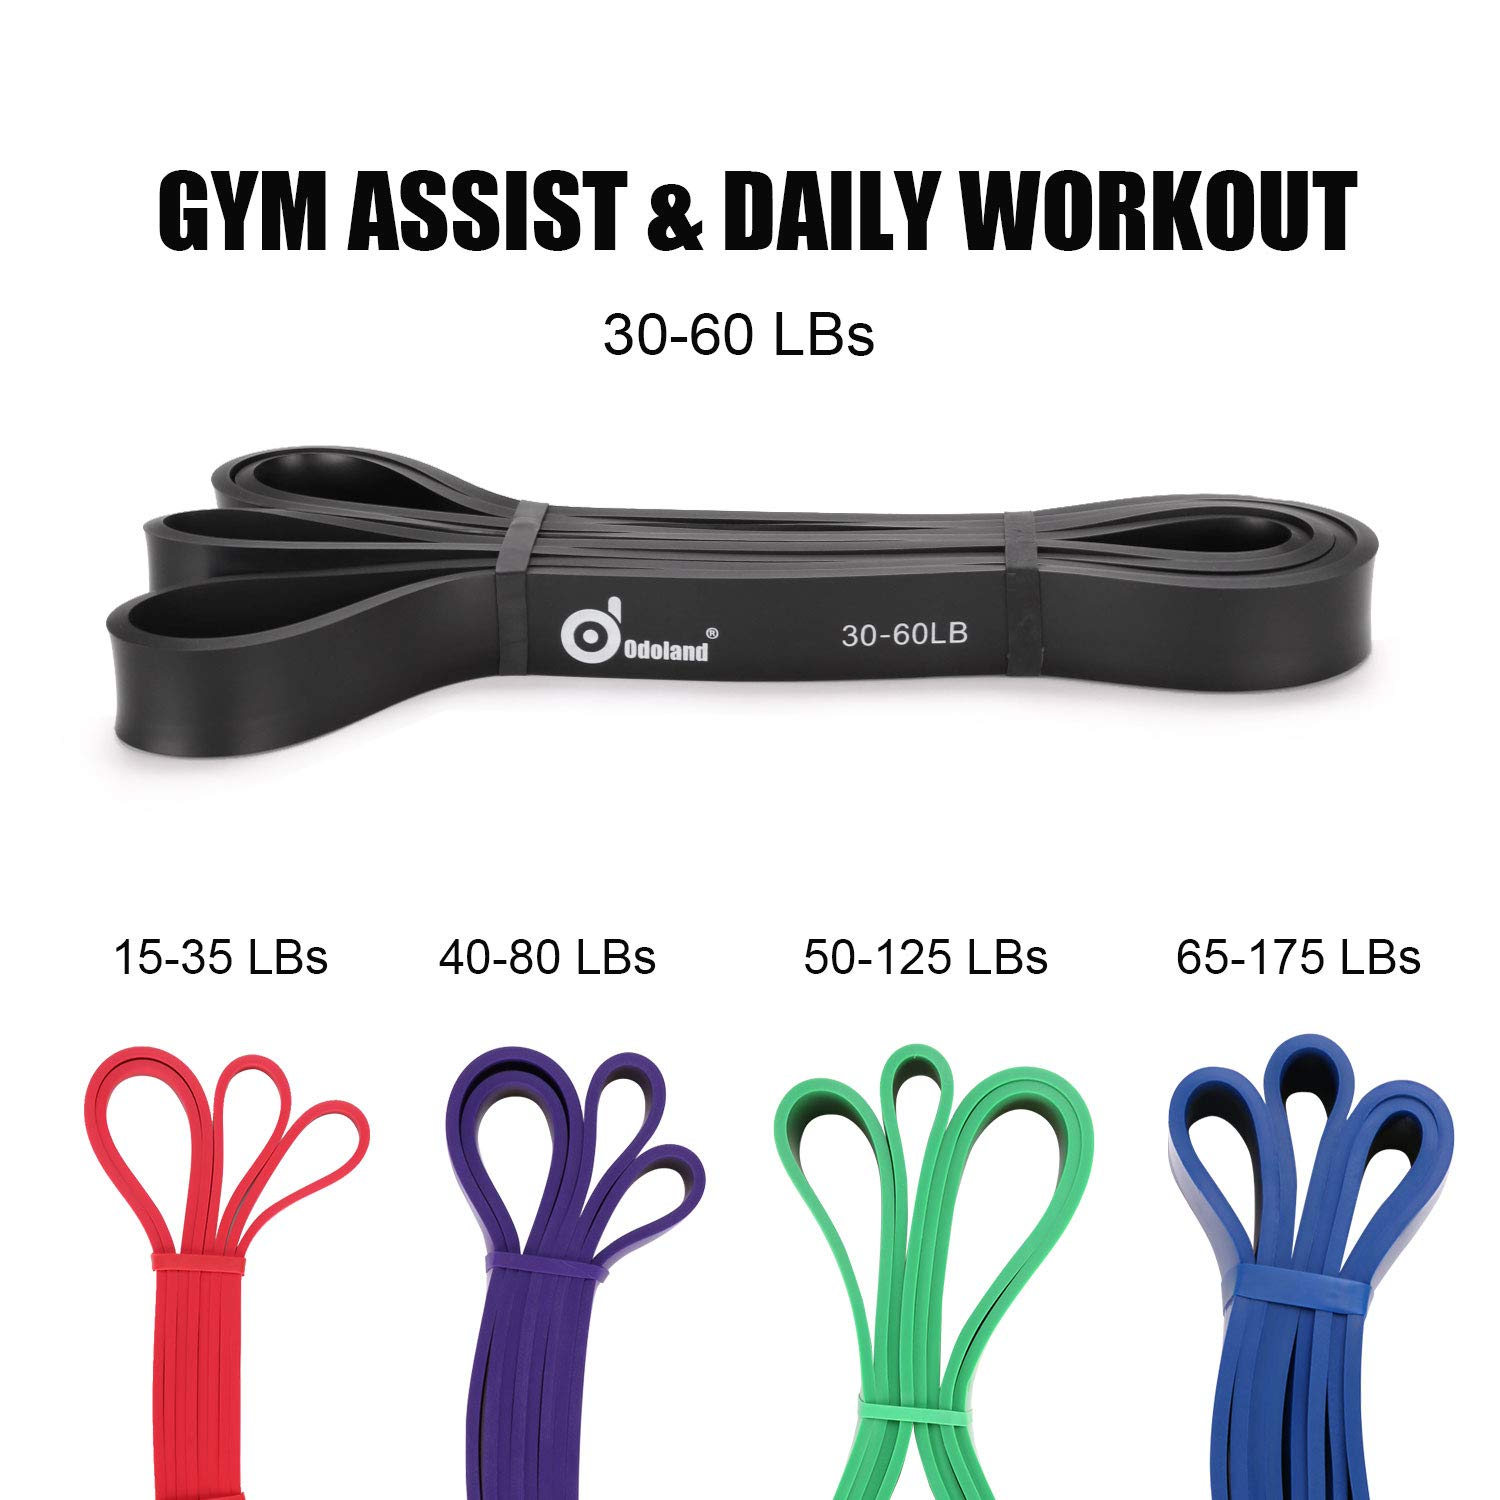 Loop Bands Odoland 16pcs Workout Bands Set Exercise Resistance Bands Kit Include Workout Tubes Door anchor Ankle Straps FREE Training Guide For Fitness Pilates Yoga Strength Gym Handles